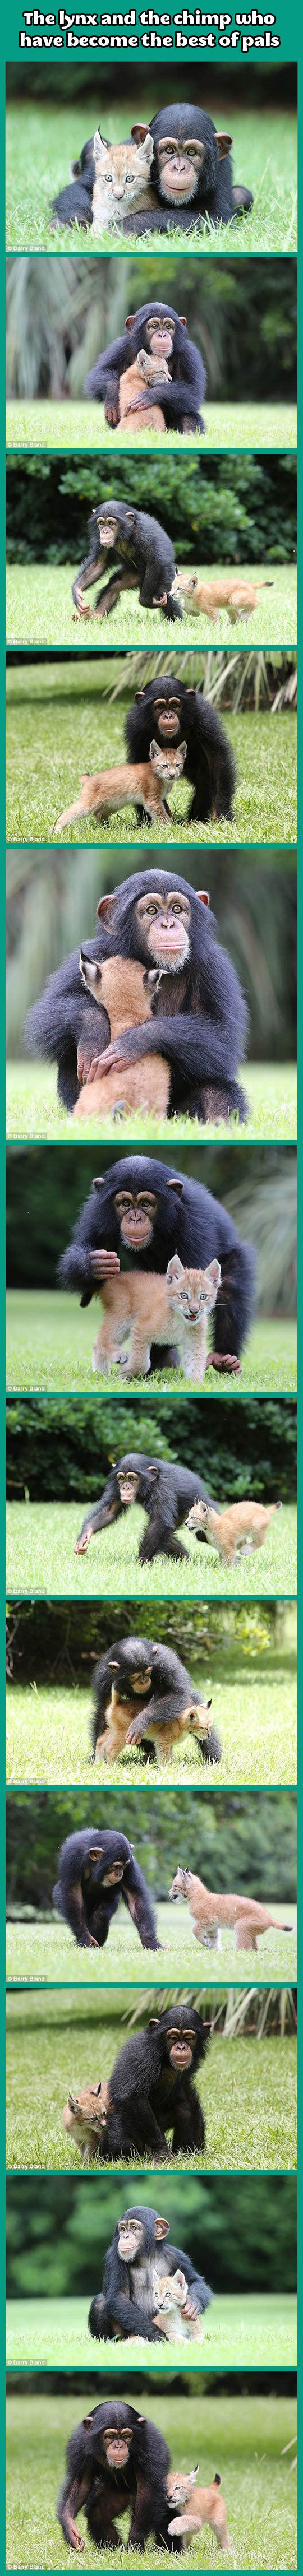 The lynx and the chimp…I don't normally pin these extra long picture combinations, but this one is just so darn CUTE!!